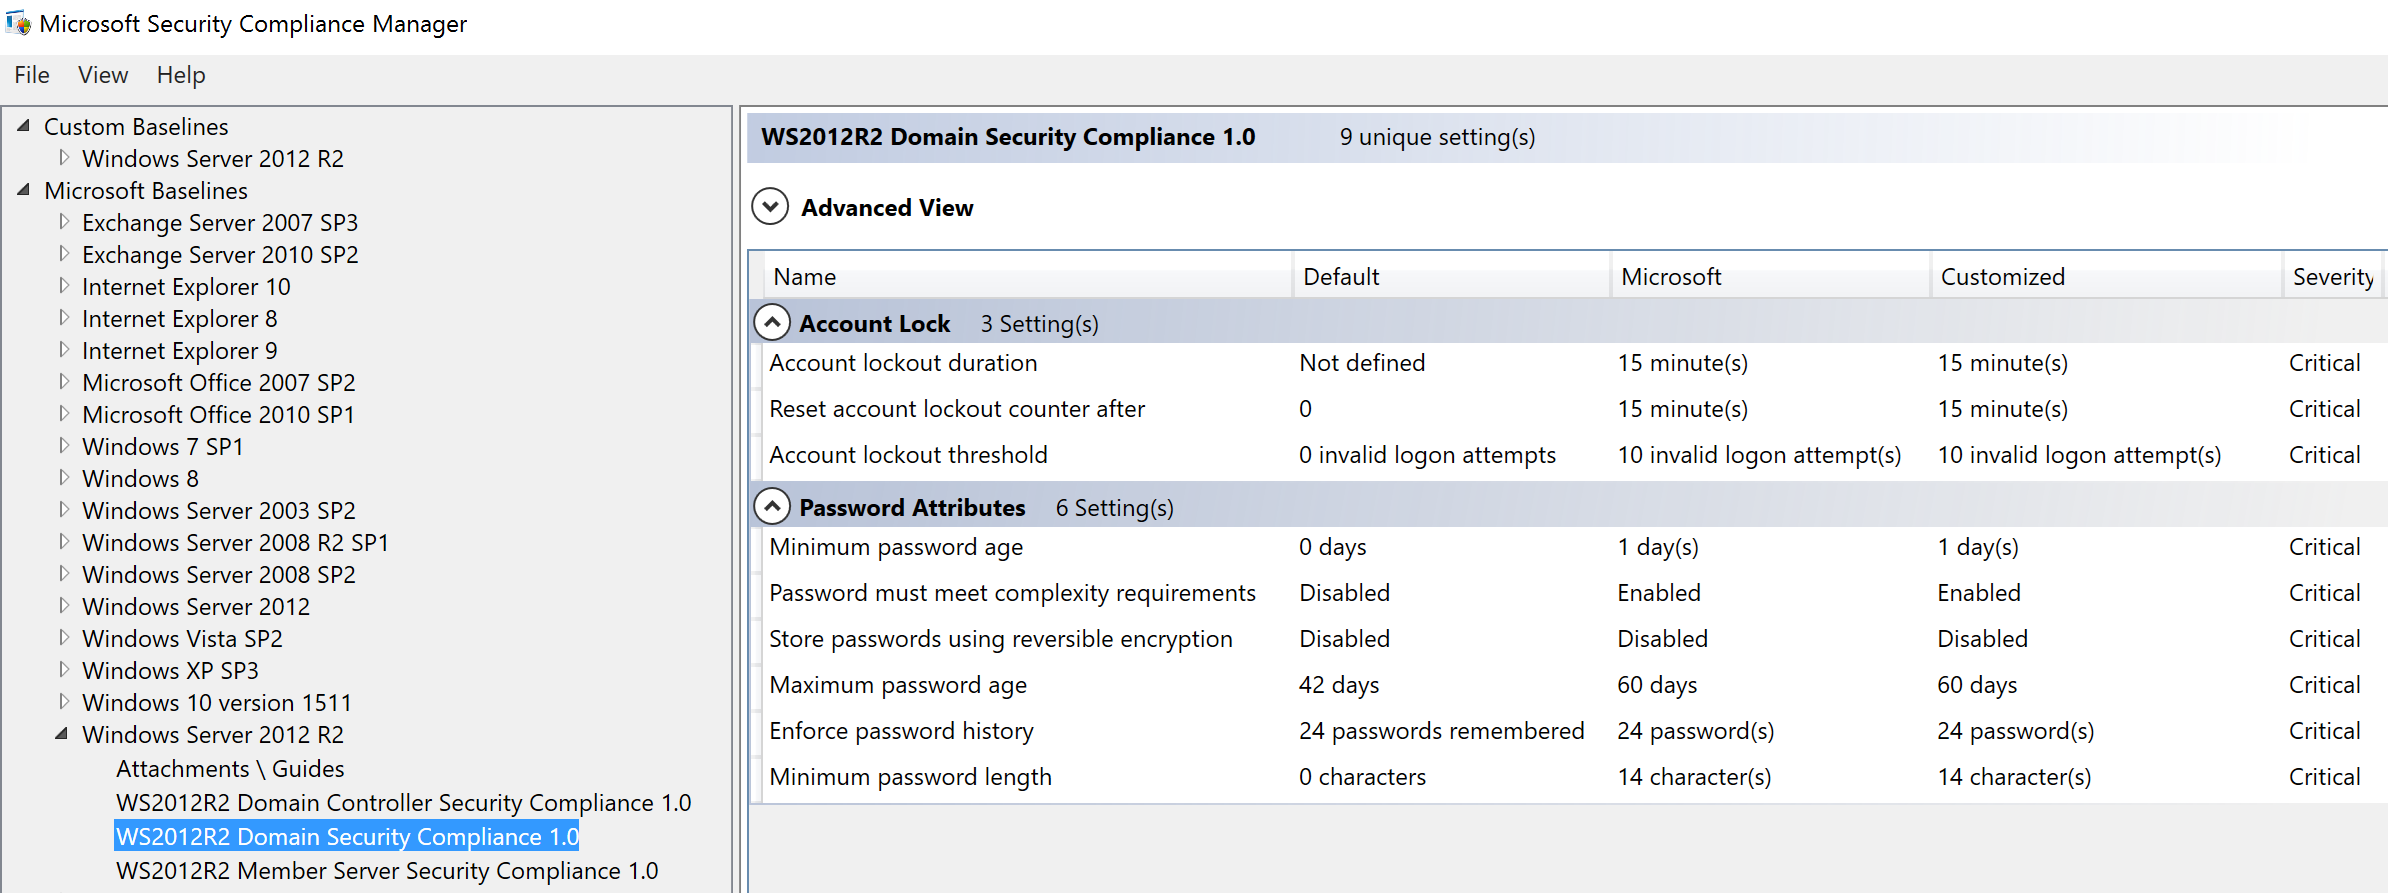 microsoft-scm-win2012r2-domainsecuritycompliance-policy